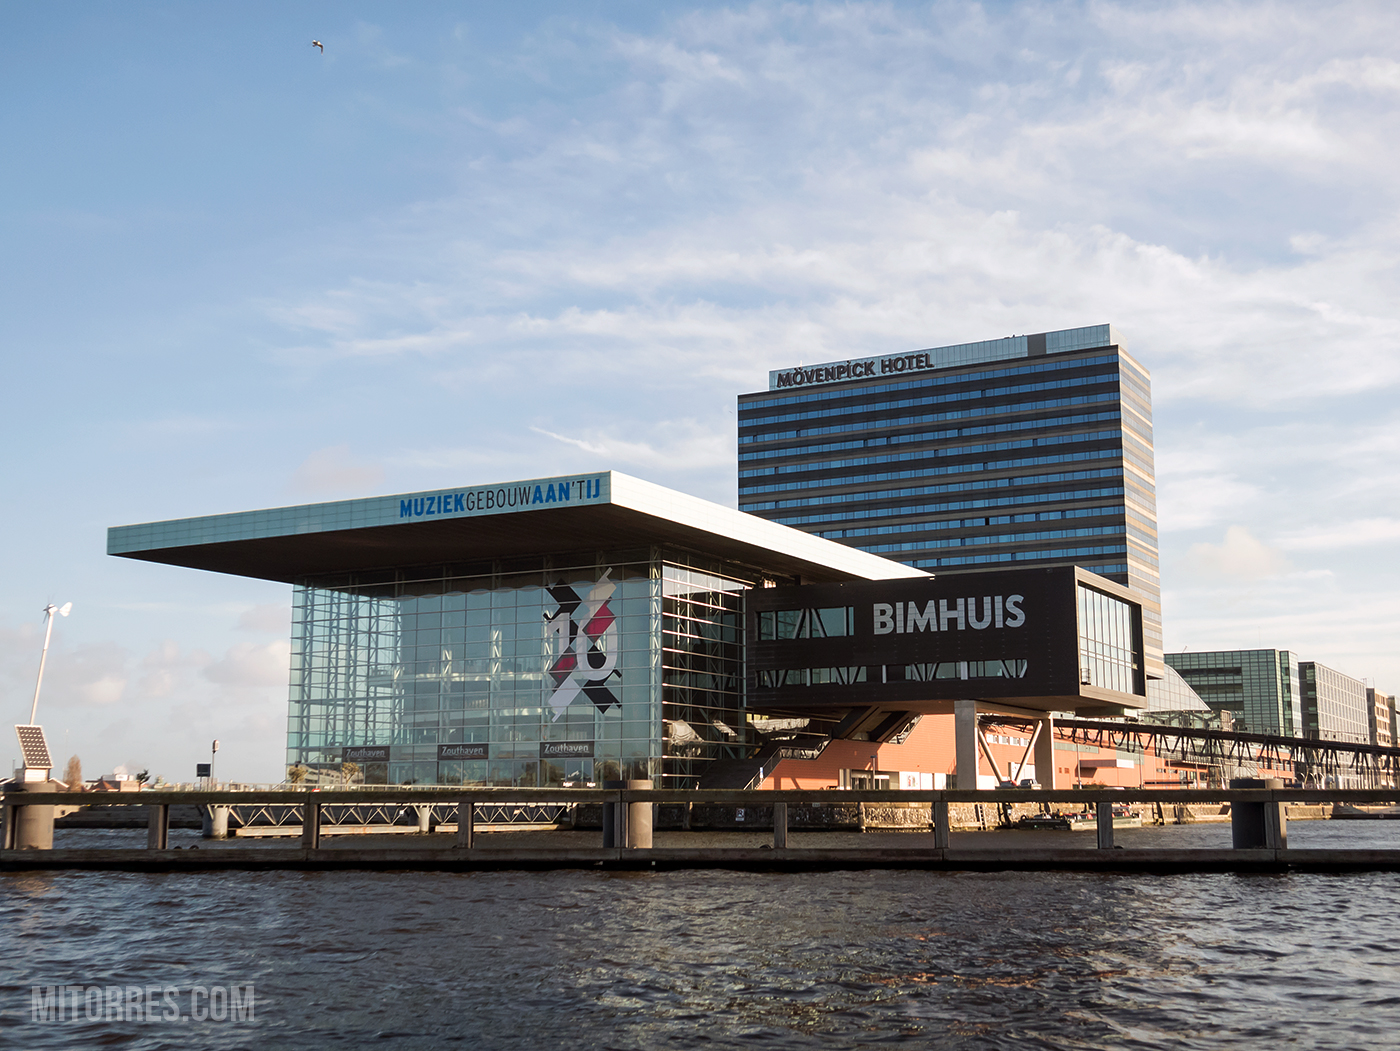 The Bimhuis, Amsterdam, Netherlands